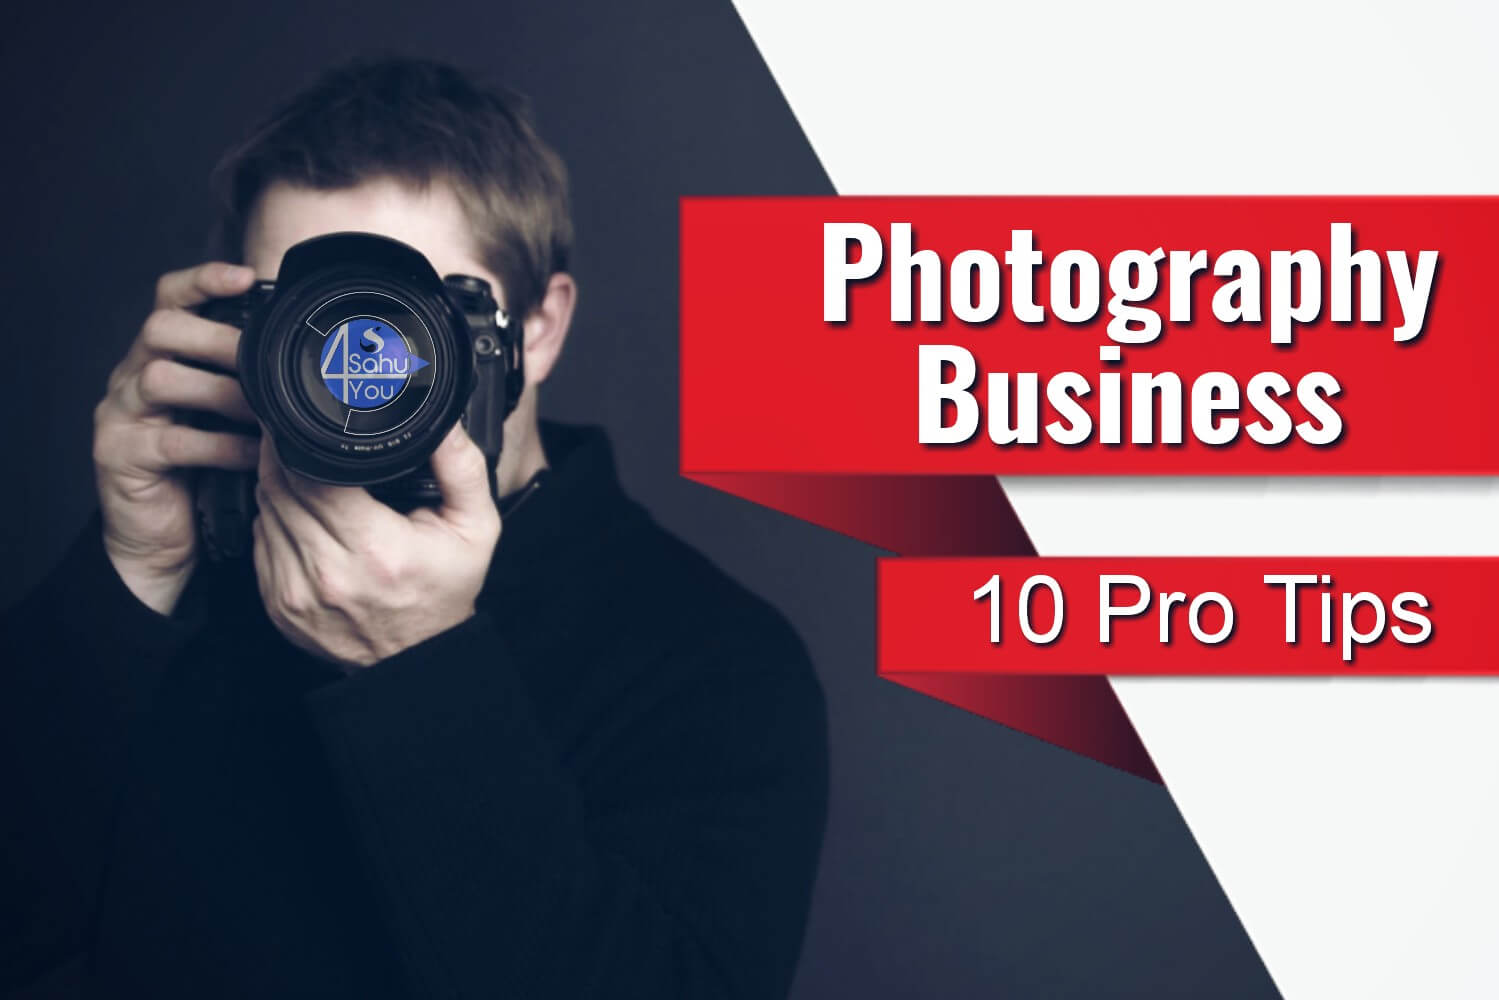 How to Promote Photography Business Ko Grow Kaise Kare